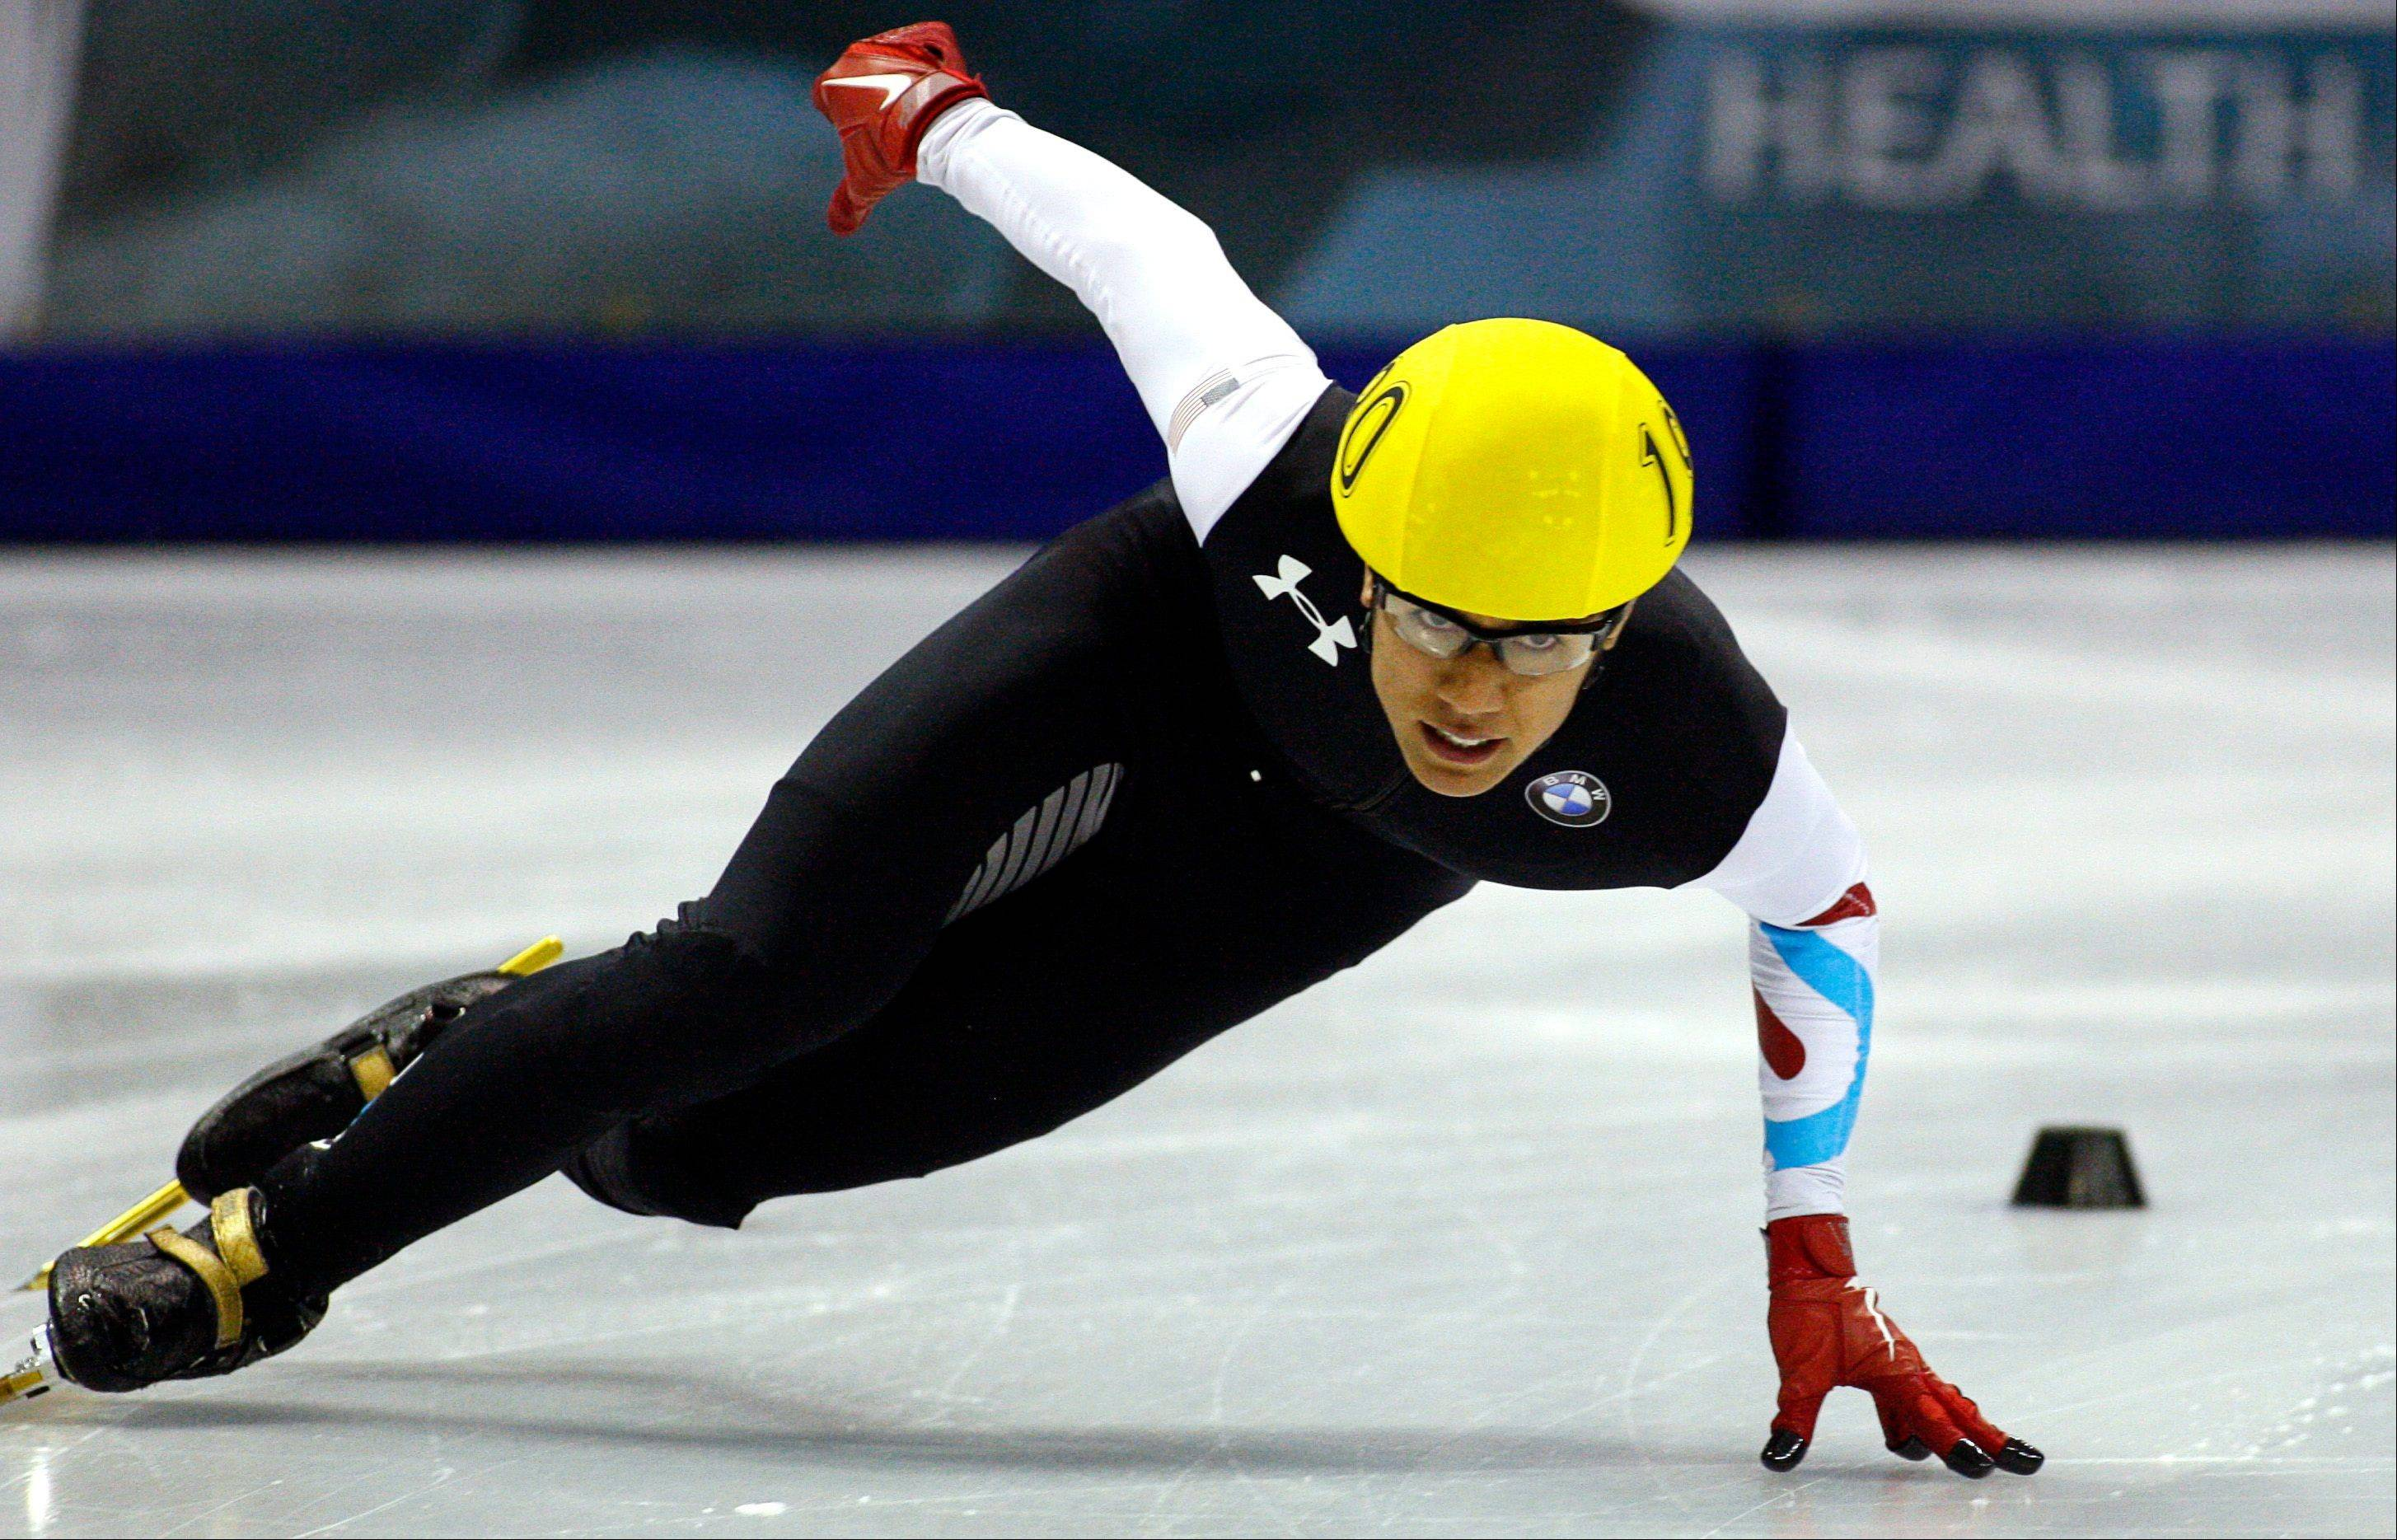 J.R. Celski of the U.S. skates for a gold medal Sunday during the men�s 500-meter competition at the ISU World Cup short track speed skating event in Calgary, Alberta.